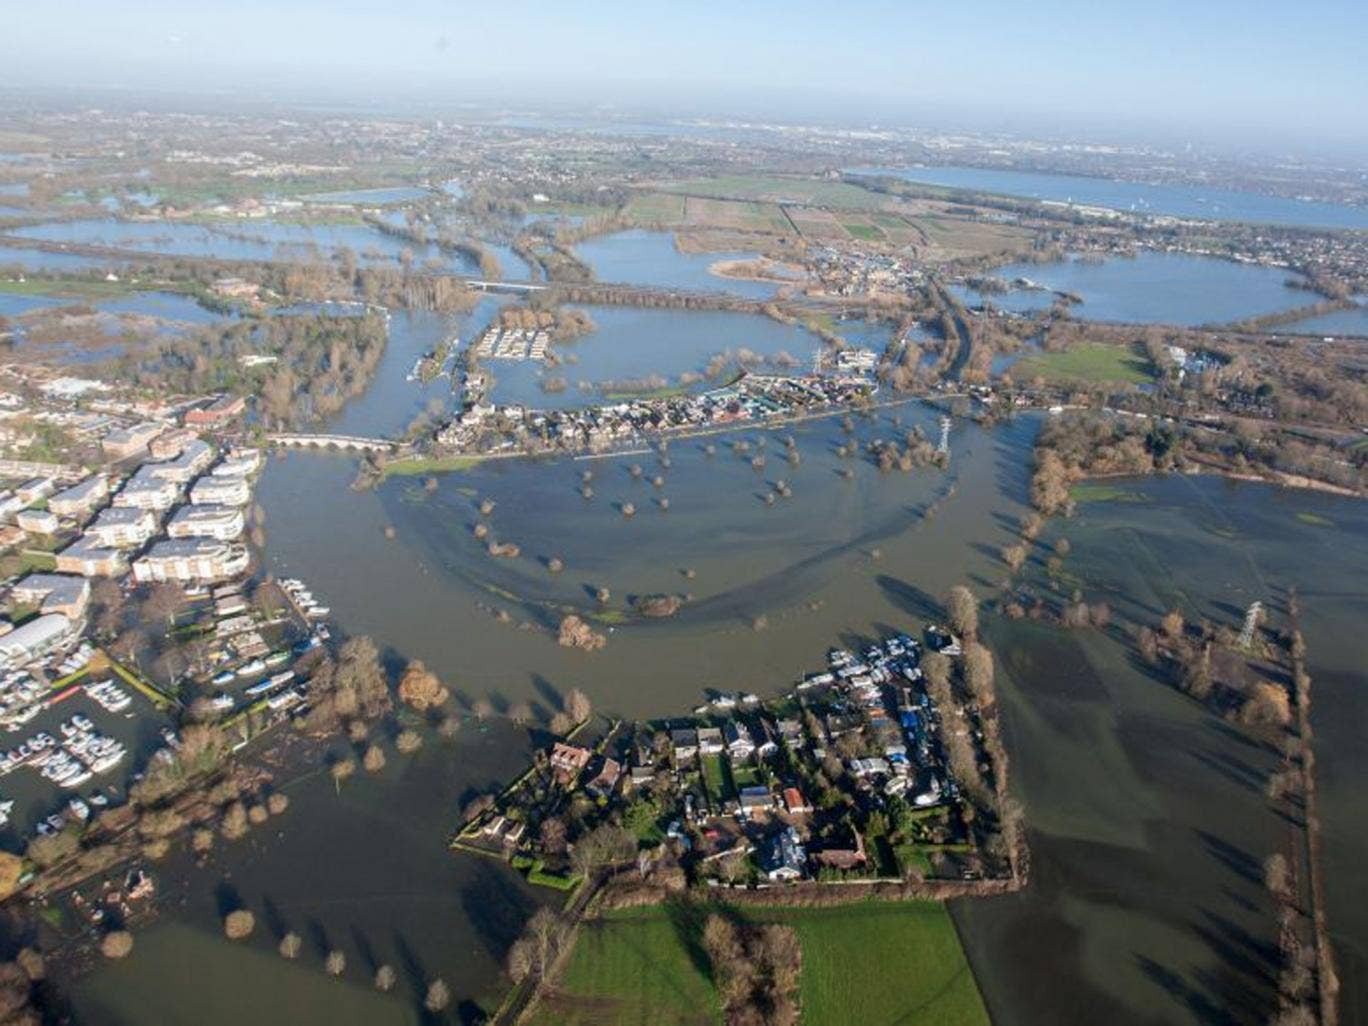 Flood water in Chertsey, Surrey, as Royal Engineers were now being tasked to carry out a high-speed assessment of damage to the UK's flood defence infrastructure